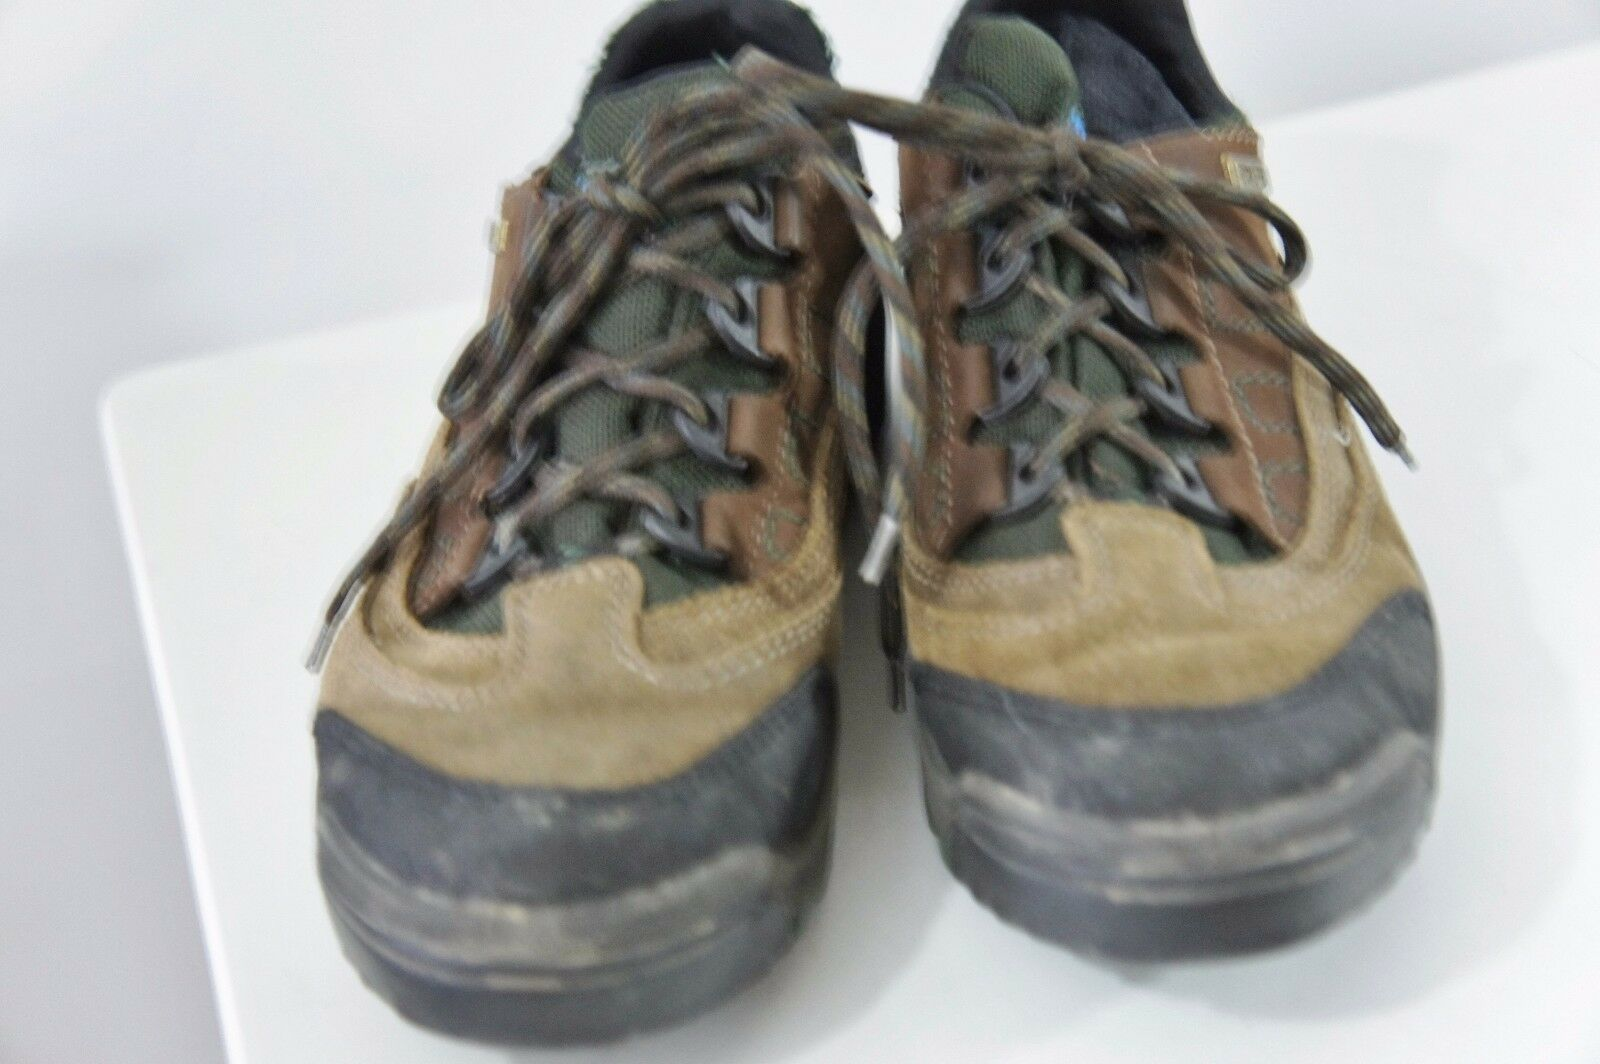 LL Bean Women's Size 8 Hiking Trail shoes Brown Suede Hiker Boots Gore-tex